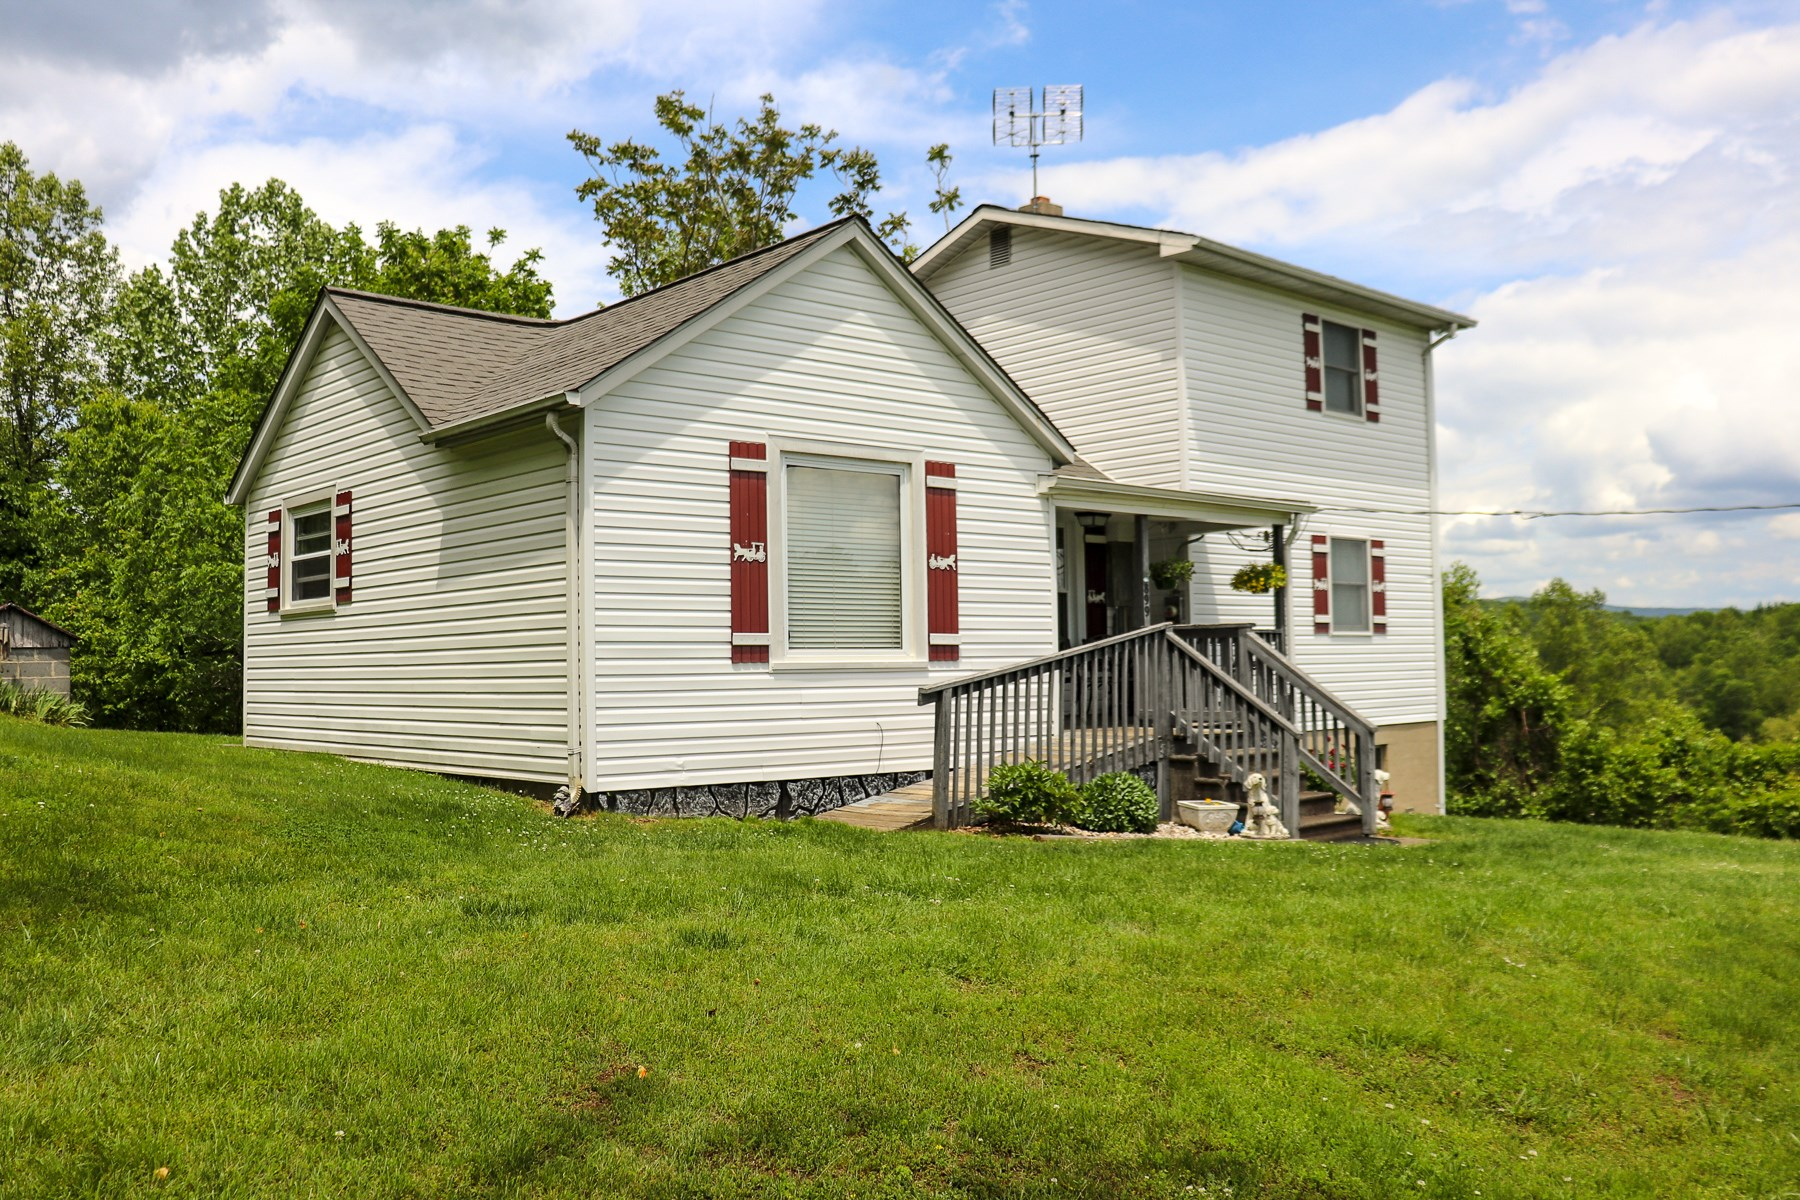 Sweet Country Home for Sale in Woolwine VA!